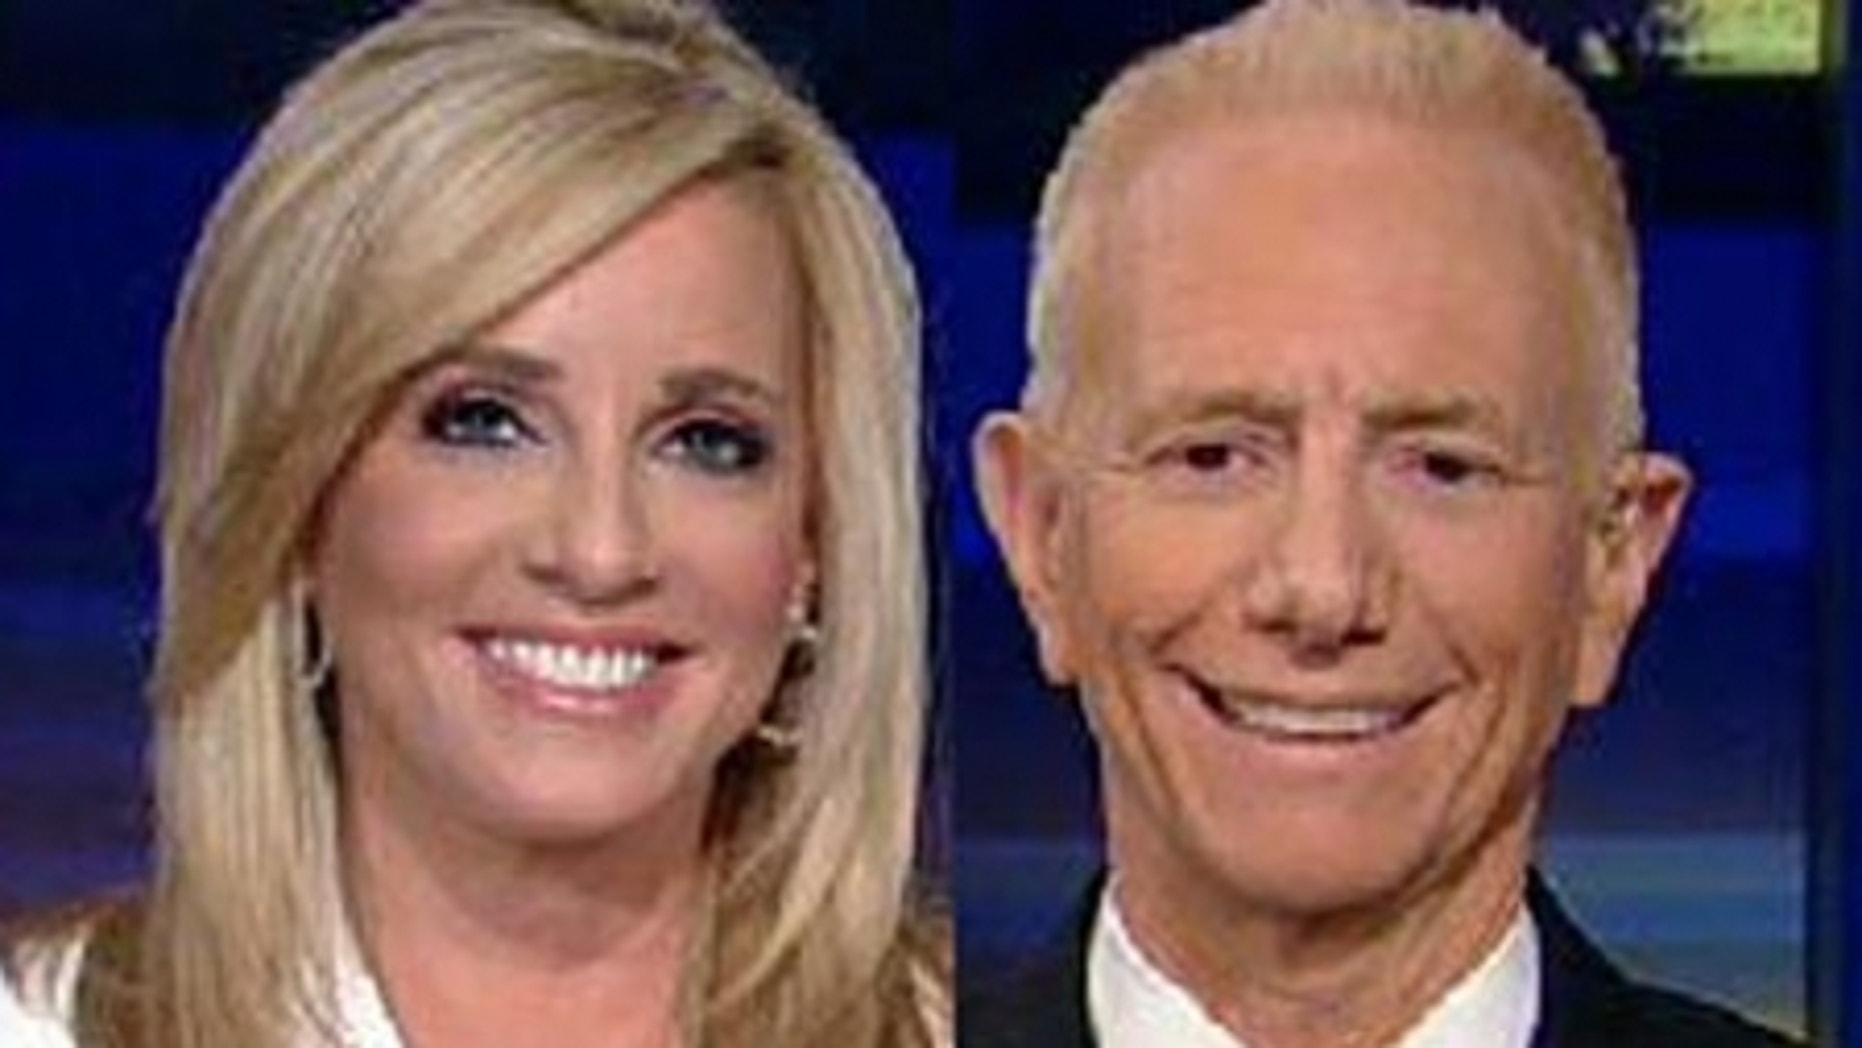 Fox's Jamie Colby and her husband, Dr. Marc Wallack